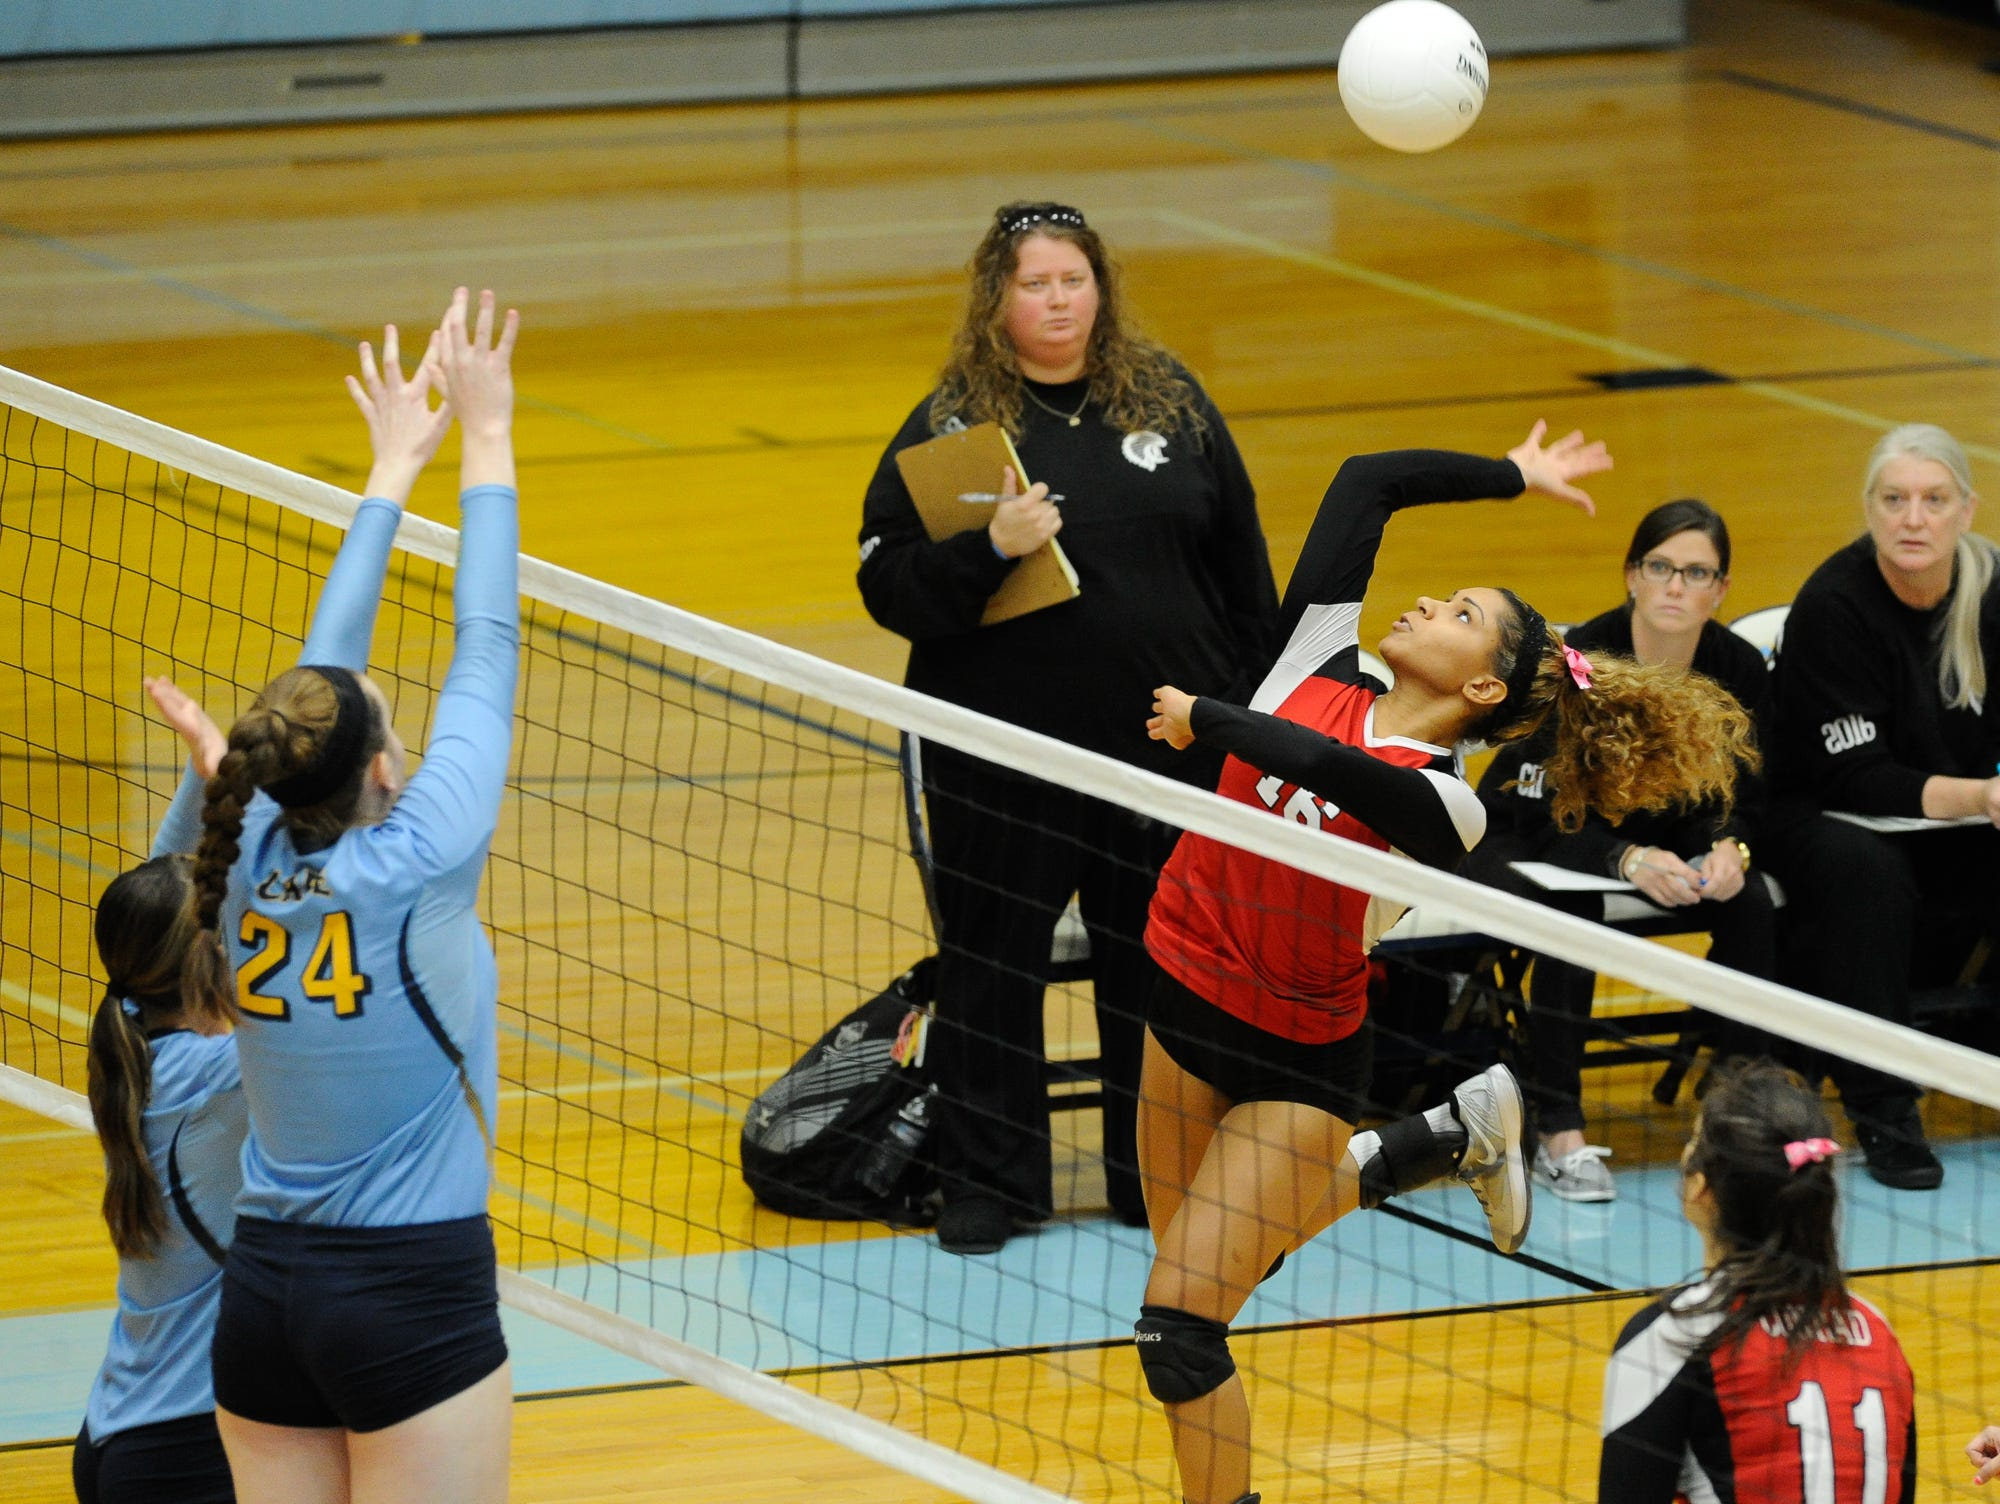 Conrad's #16 Aspen Morehead with a spike in the first game against Cape Thursday night at Cape Henlopen High School.